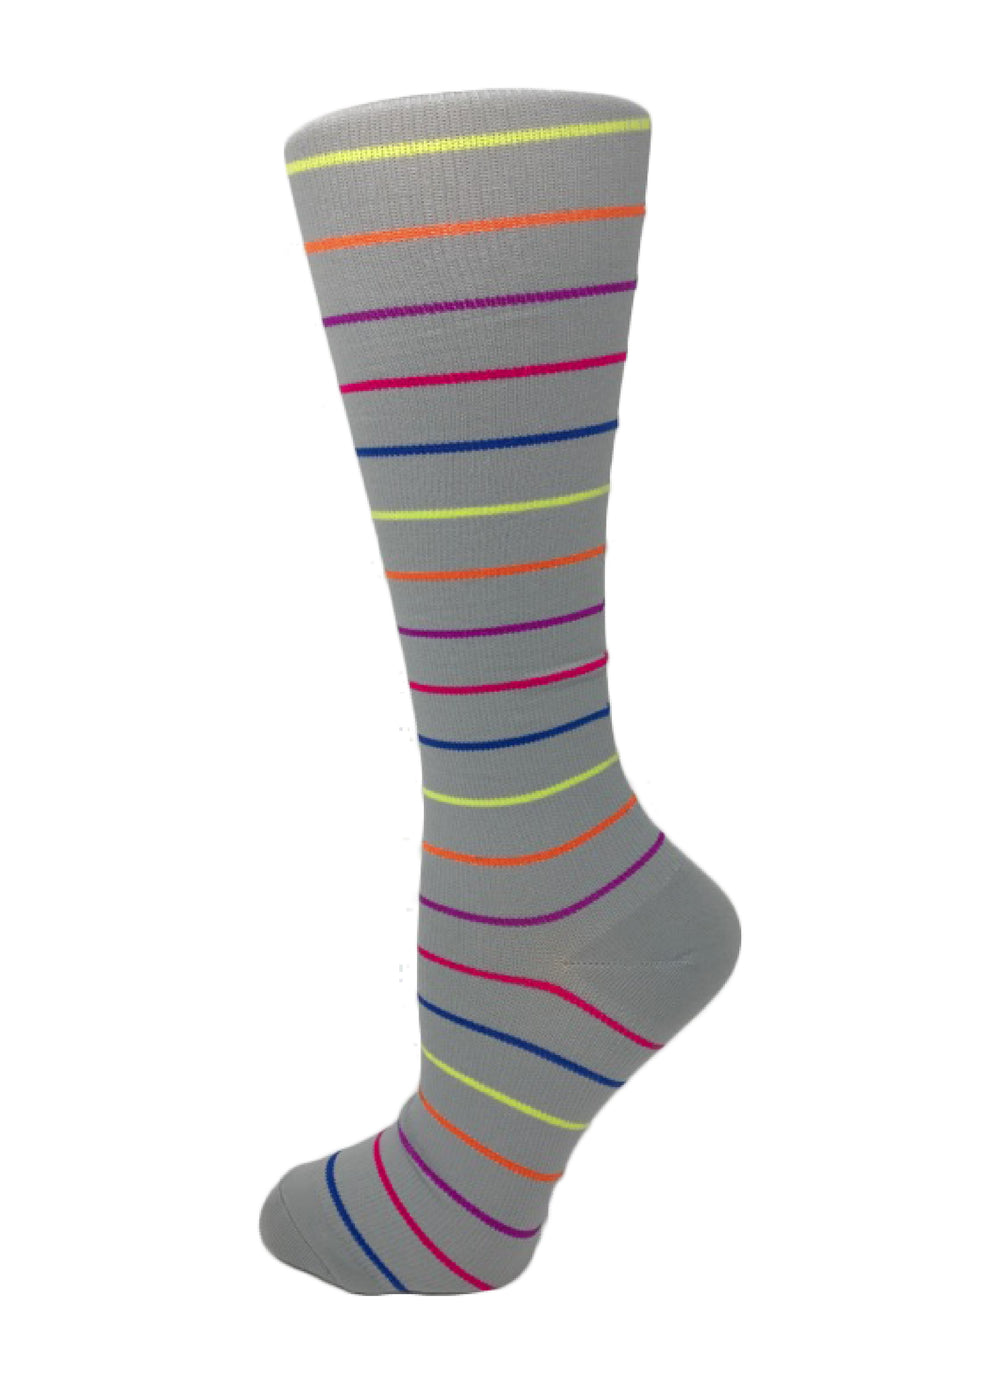 Doctor's Choice Compression Socks – Gray Stripes